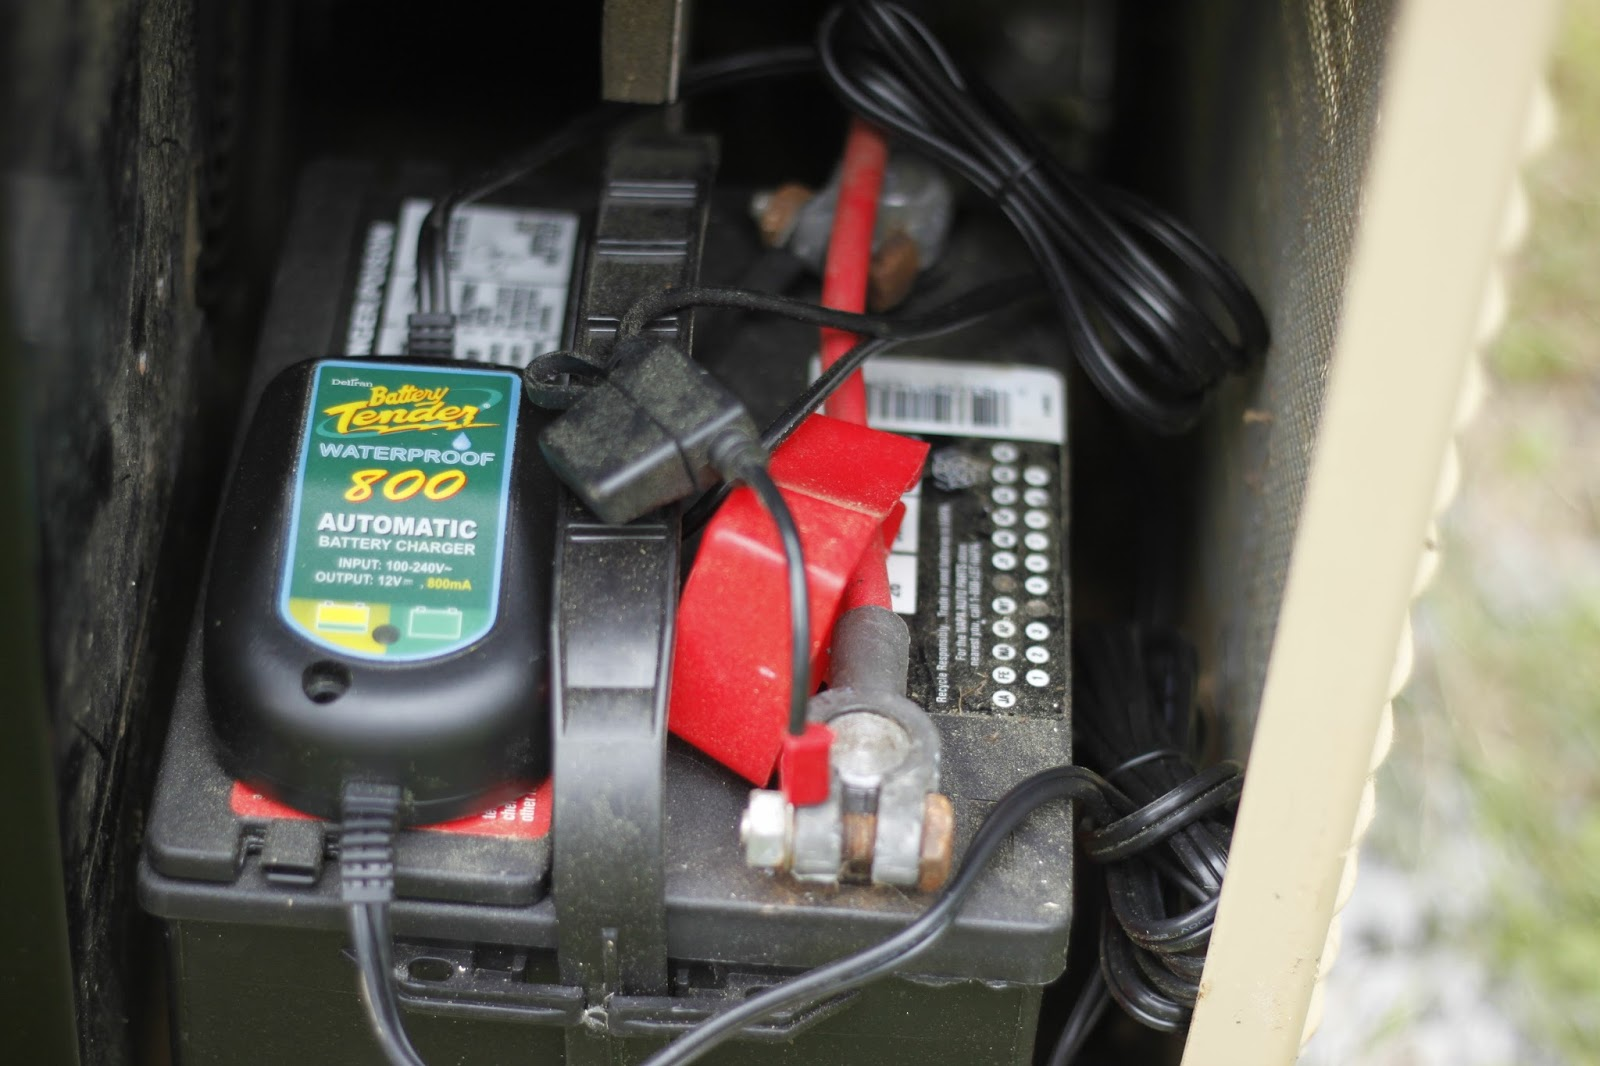 charger%2Bon%2Bbattery fet tricks substitue battery charger for generac generator wiring diagram for 20kw generac generator at bayanpartner.co